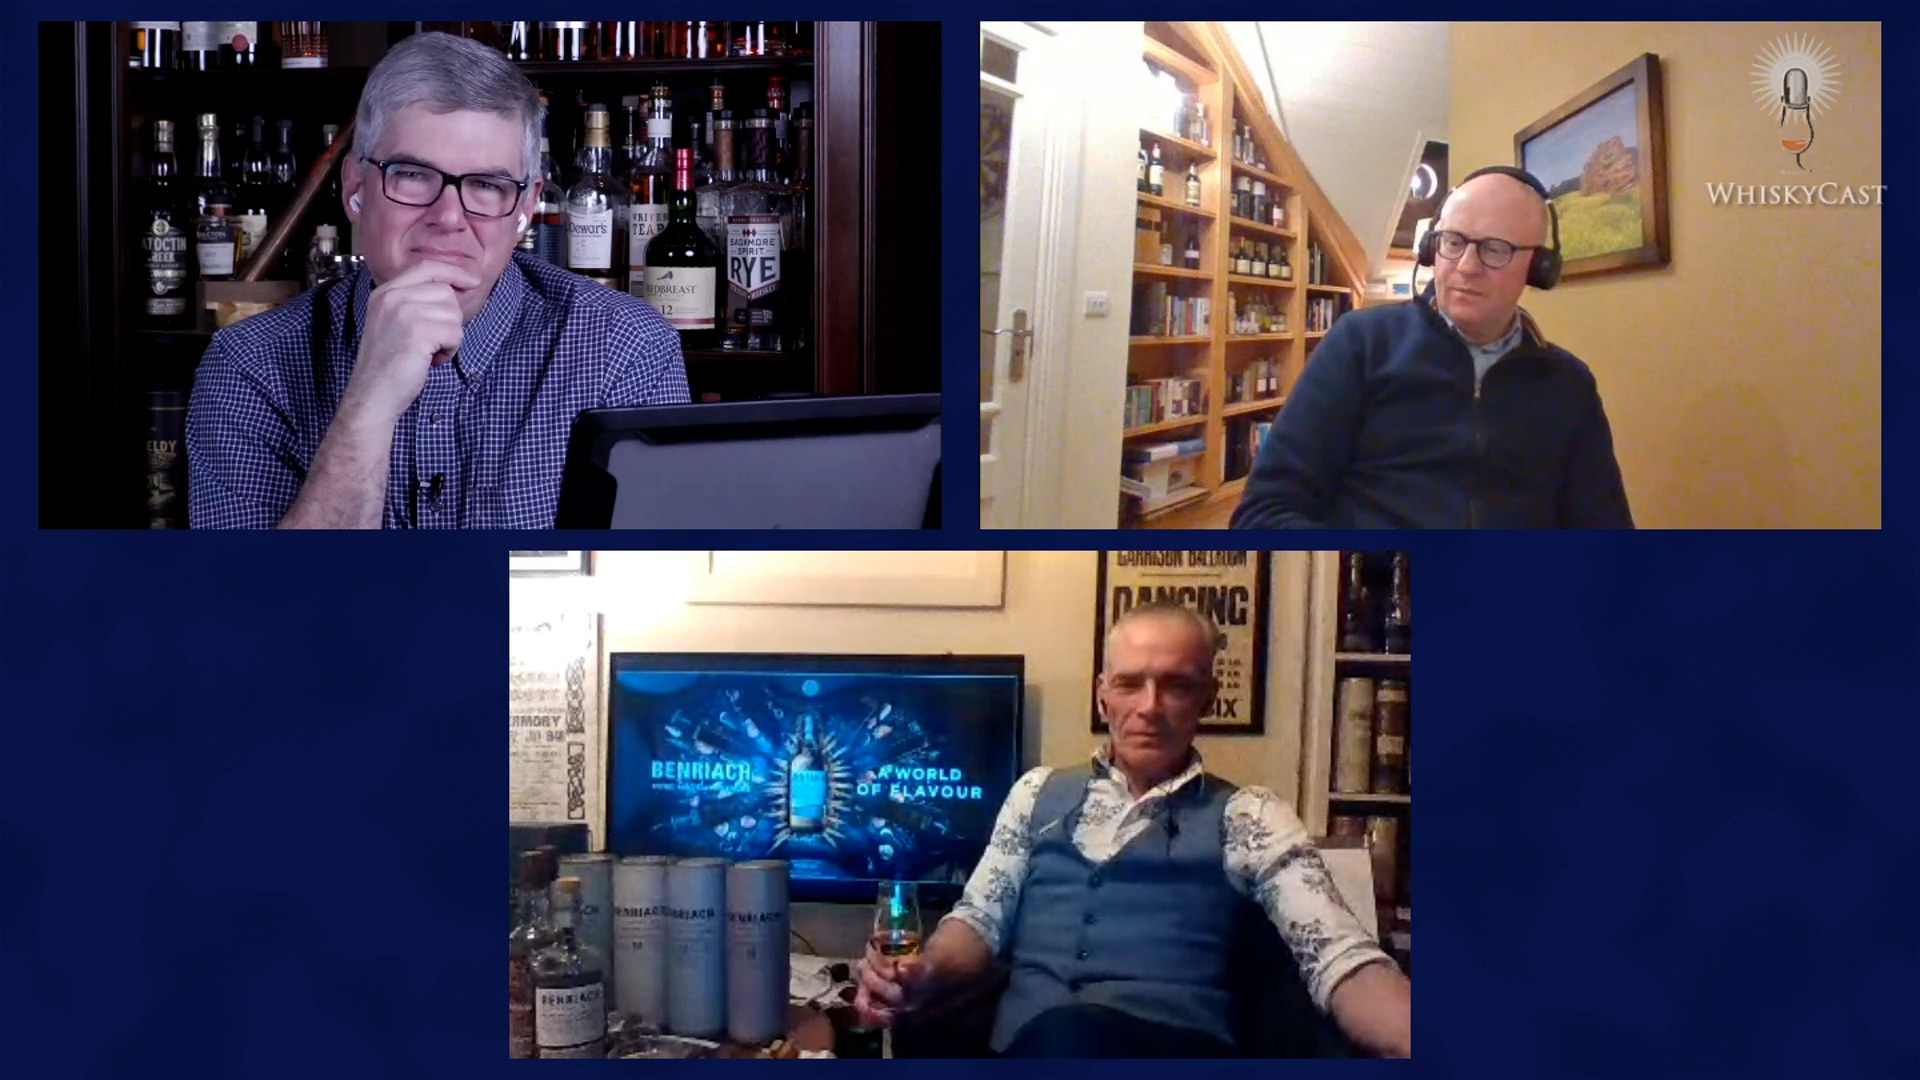 Midleton Master Distiller Kevin O'Gorman and Stewart Buchanan of BenRiach and GlenDronach distilleries were our guests on the latest #HappyHour webcast.